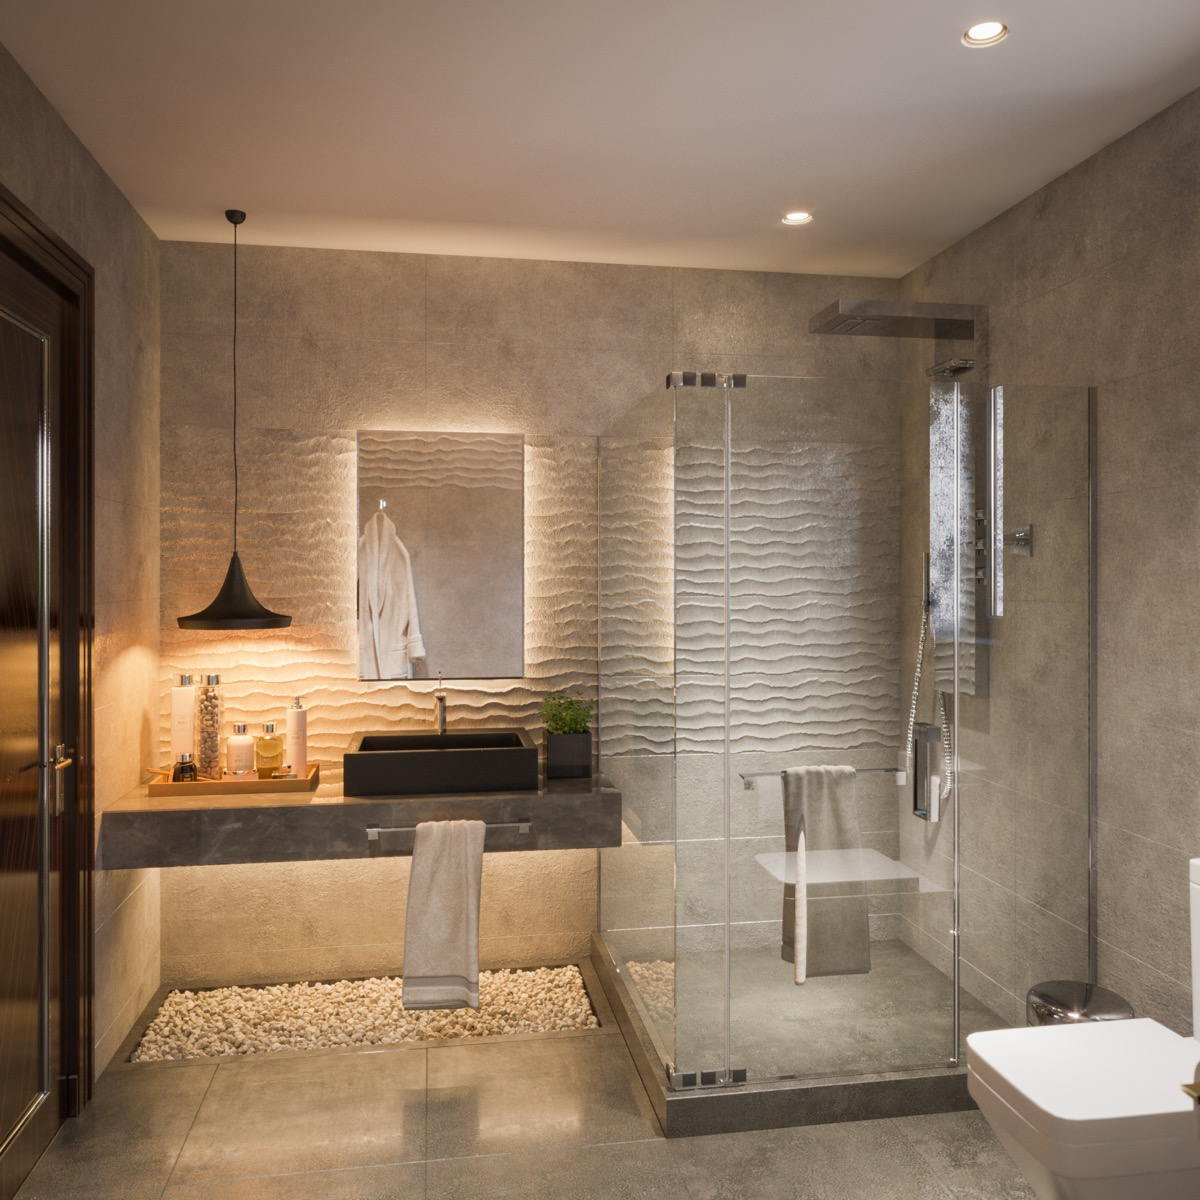 Modern Bathroom 51 Modern Bathroom Design Ideas Plus Tips On How To Accessorize Yours